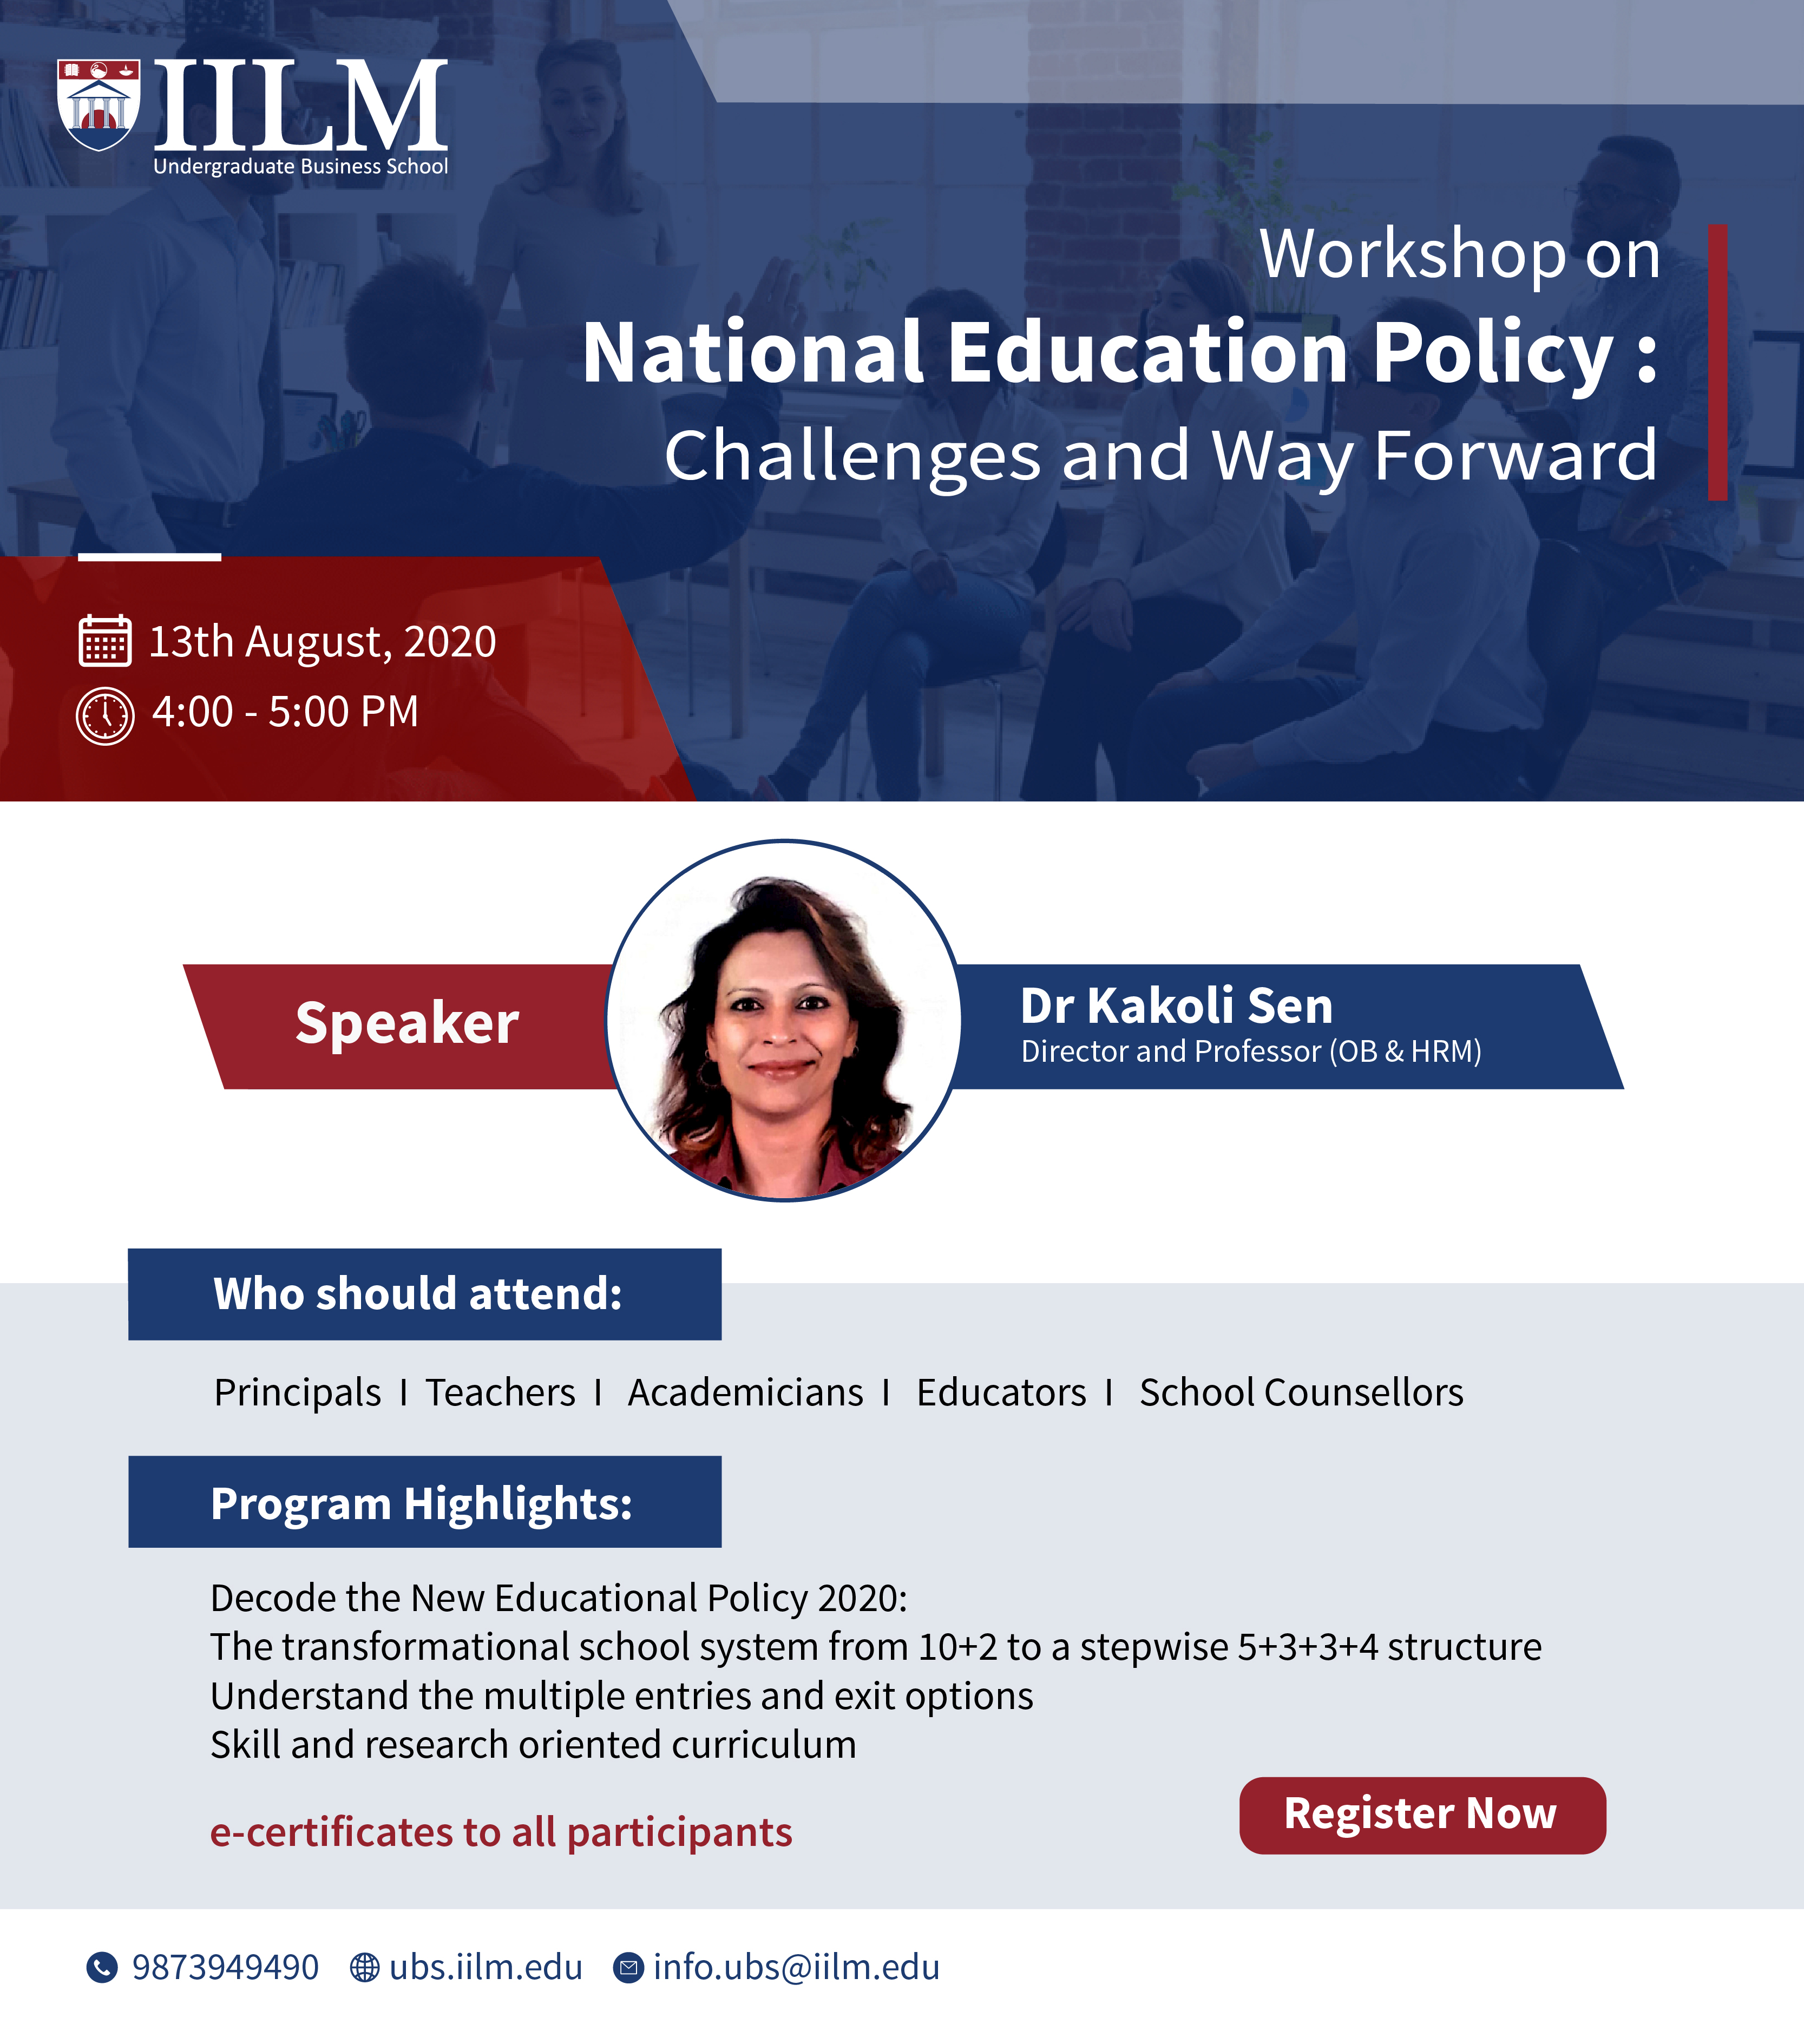 Workshop on National Education Policy: Challenges and Way Forward